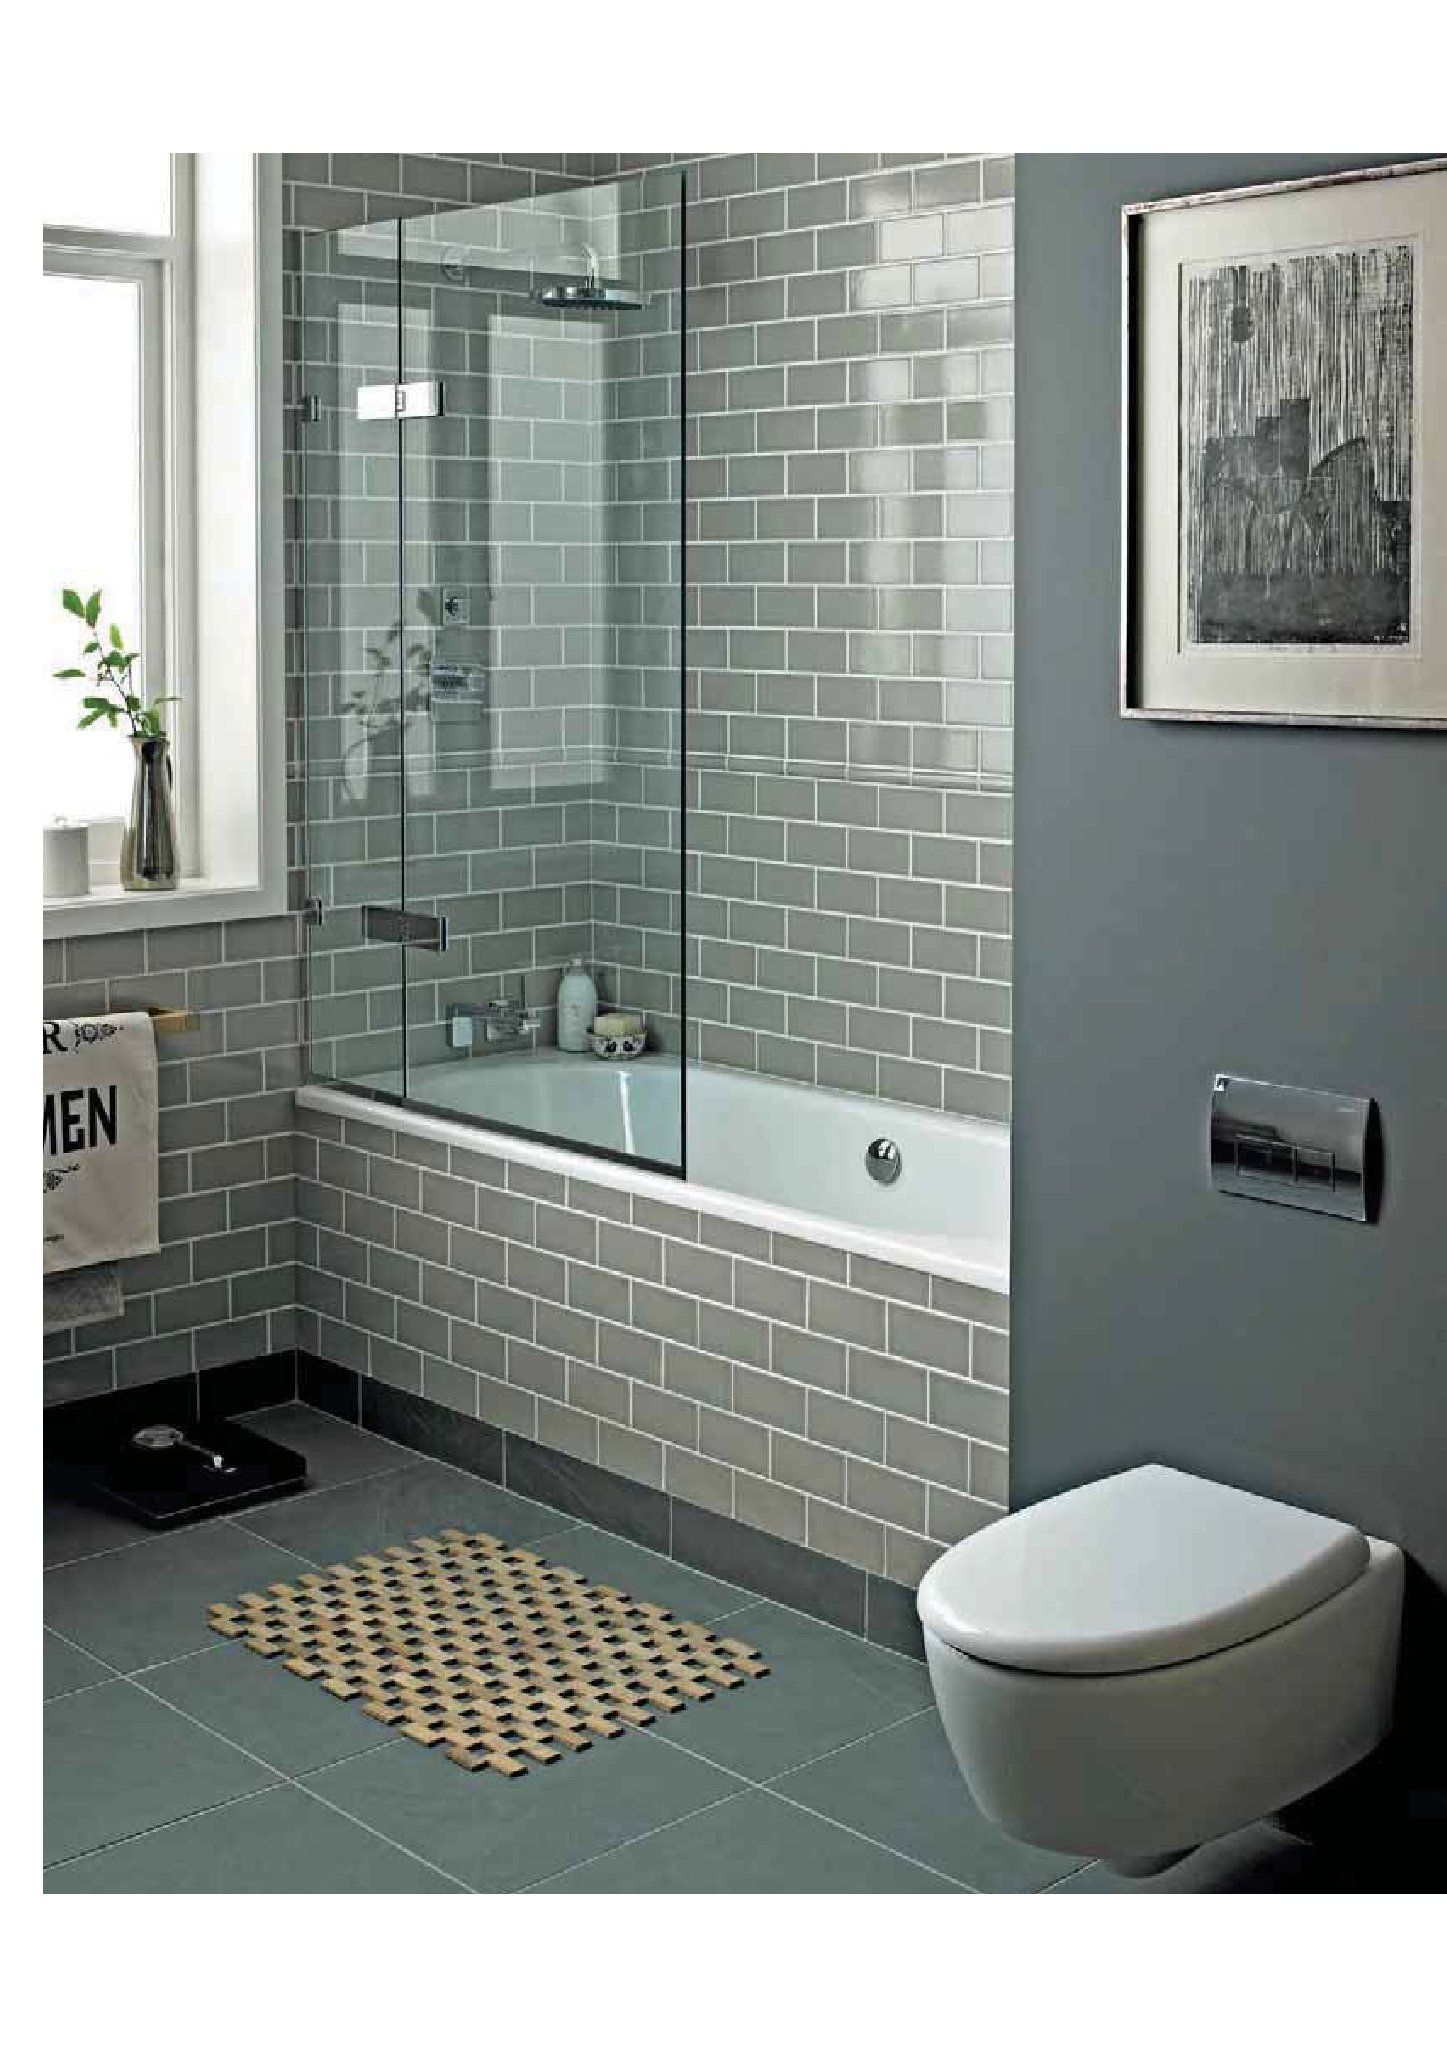 Bathroom Tiles Colour Combination smoke glass subway tile | grey bathrooms, modern shower and slate